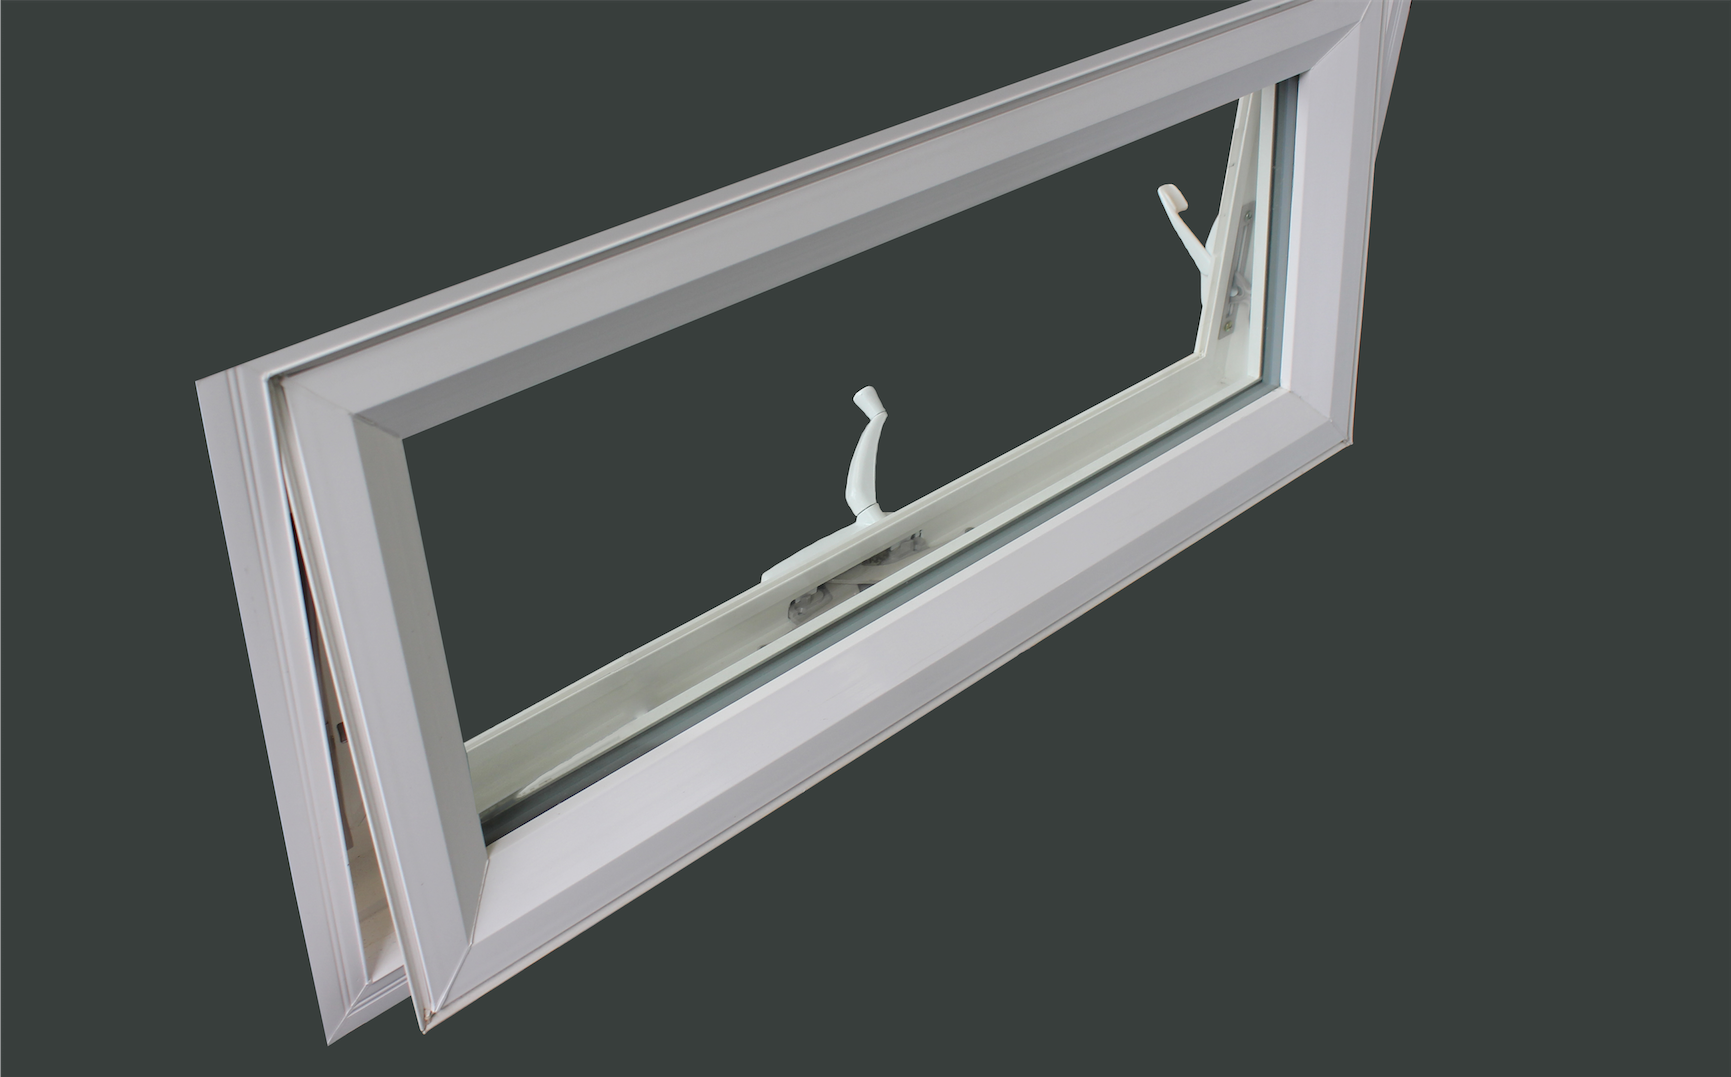 New Construction Awning Windows Specialty Wholesale Supply